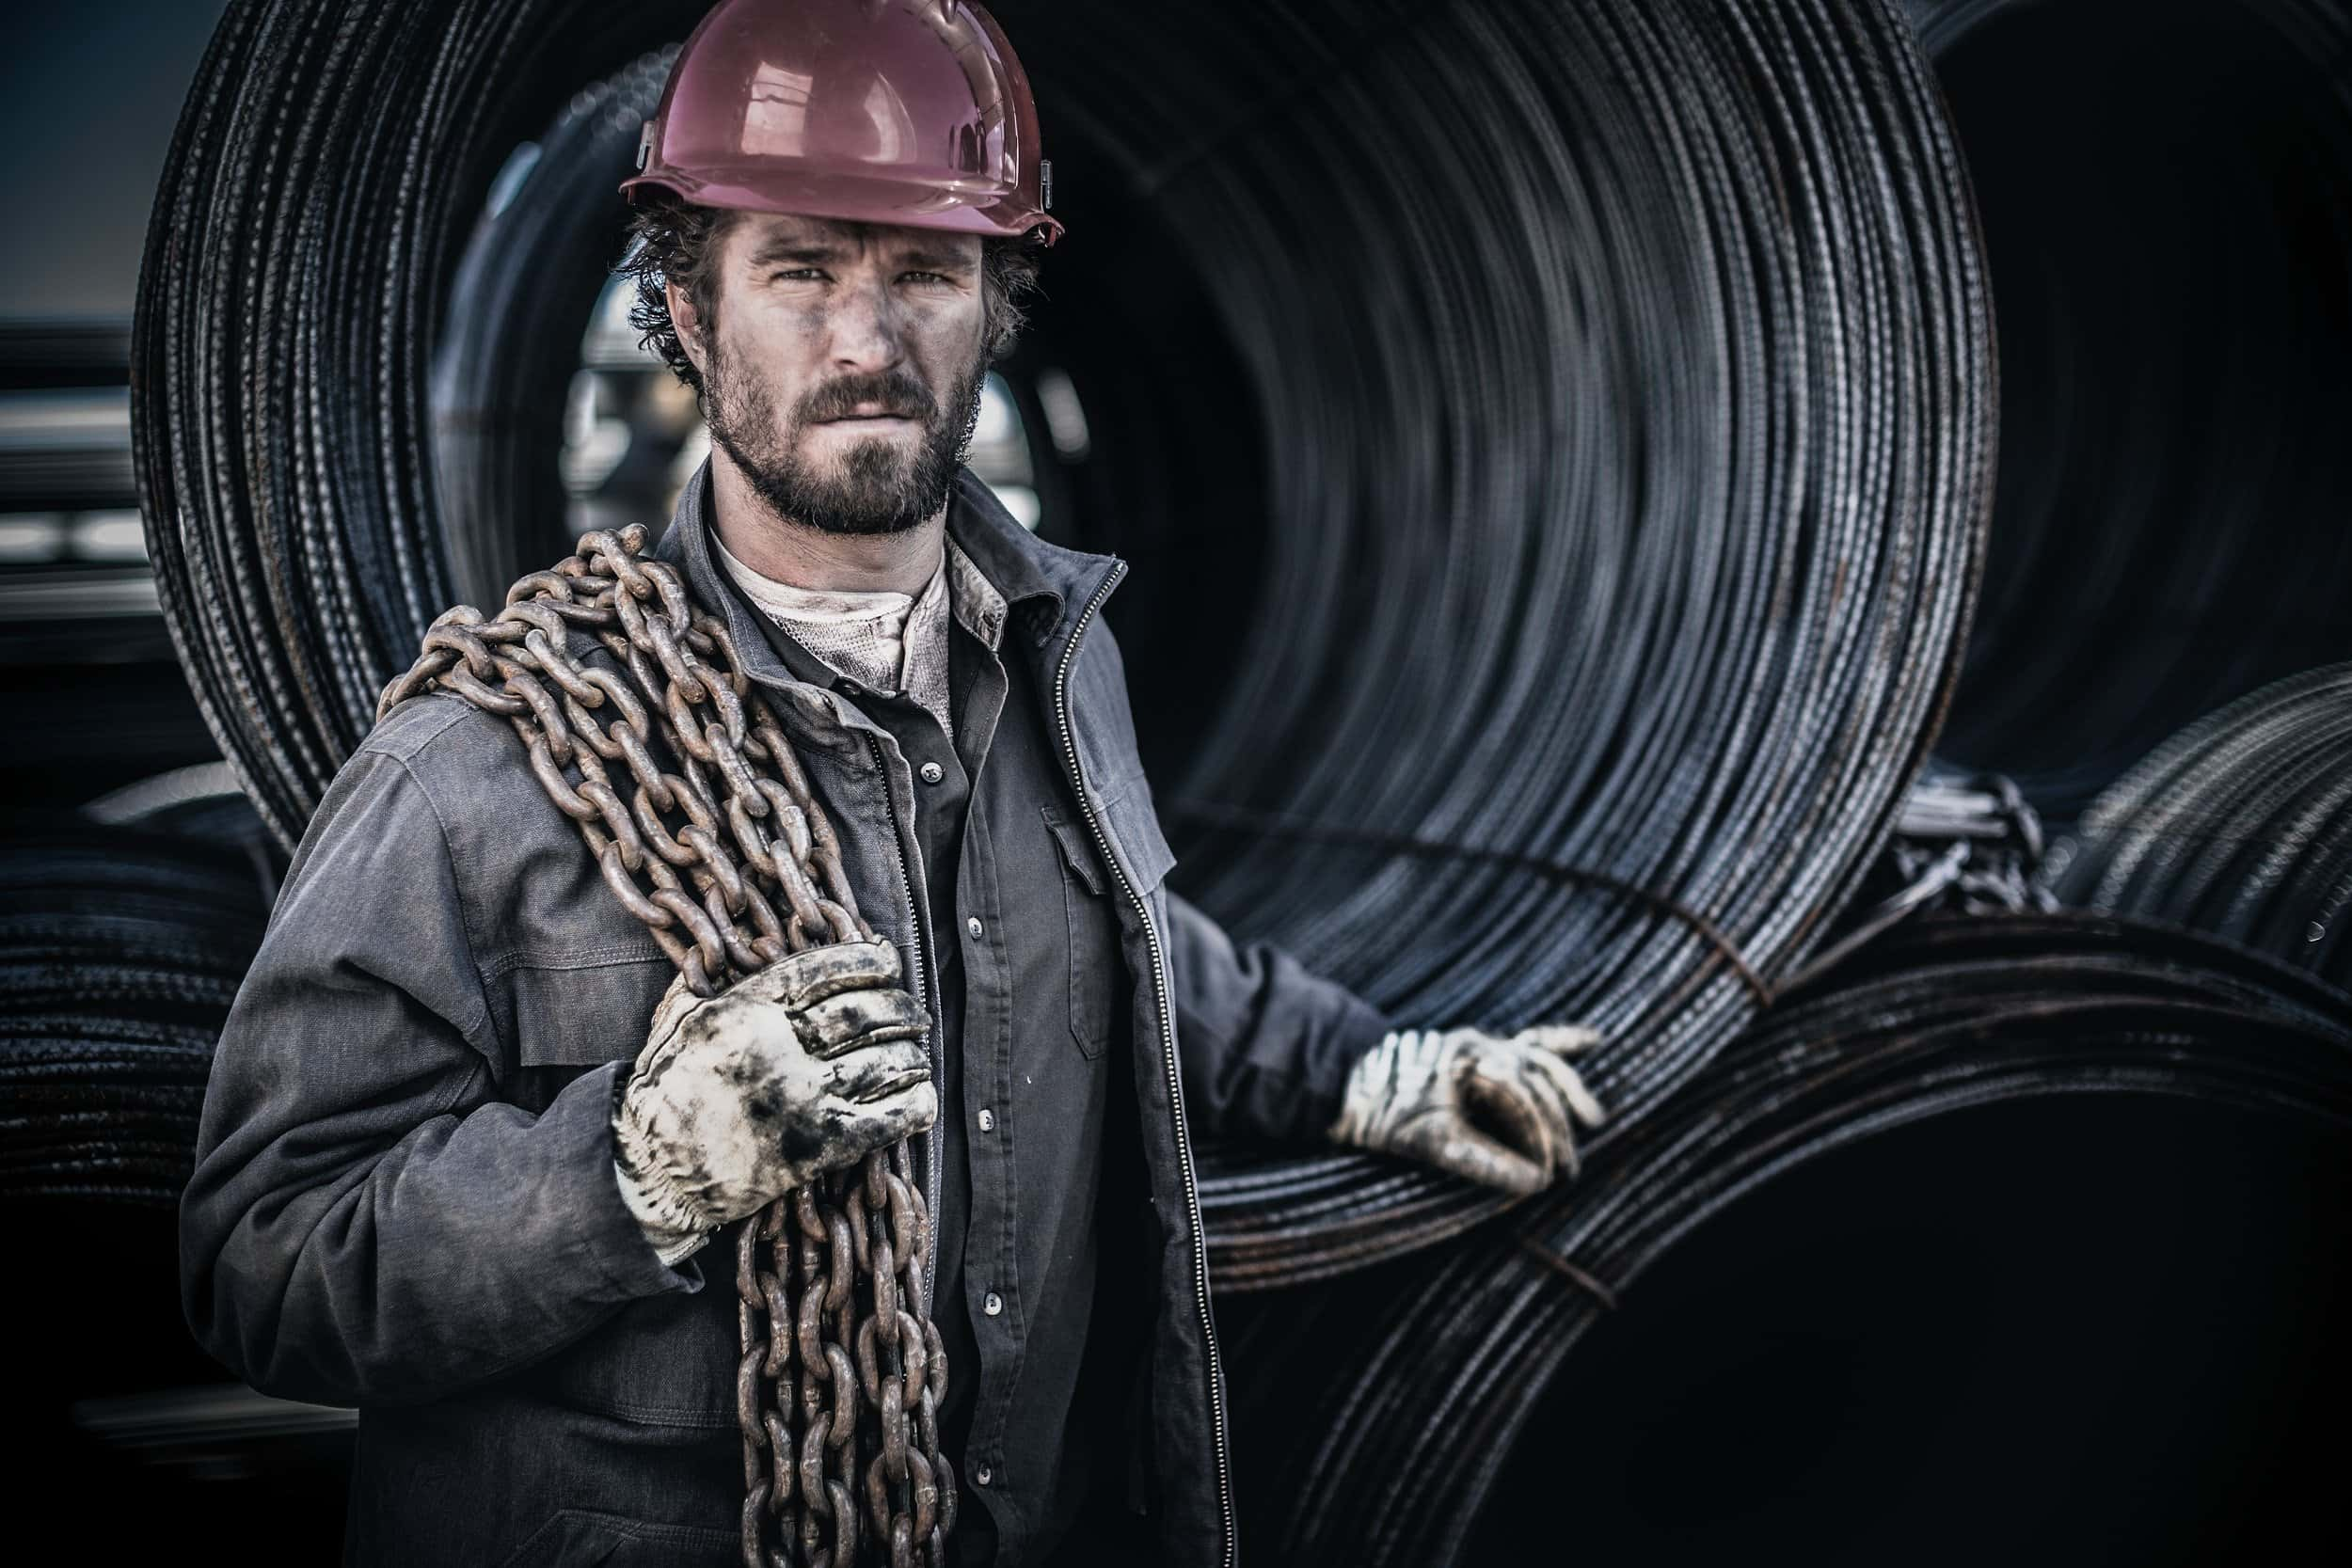 rugged man carrying chains wears a hard hat and distressed jacket, gloves and shirt